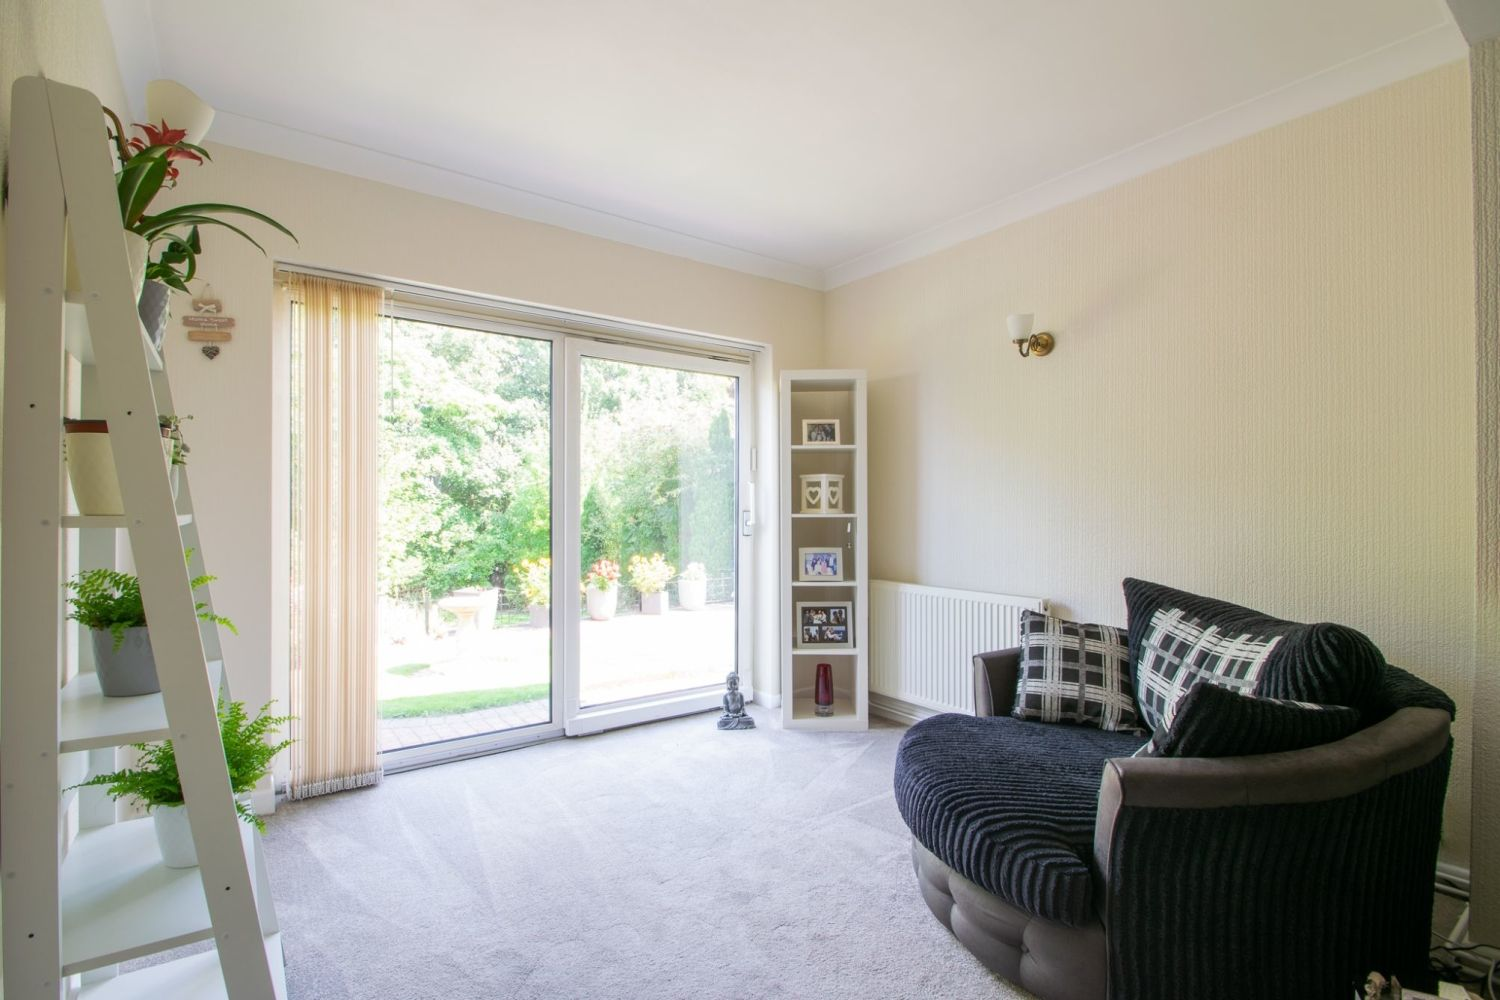 3 bed semi-detached for sale in High Haden Crescent, Cradley Heath  - Property Image 4